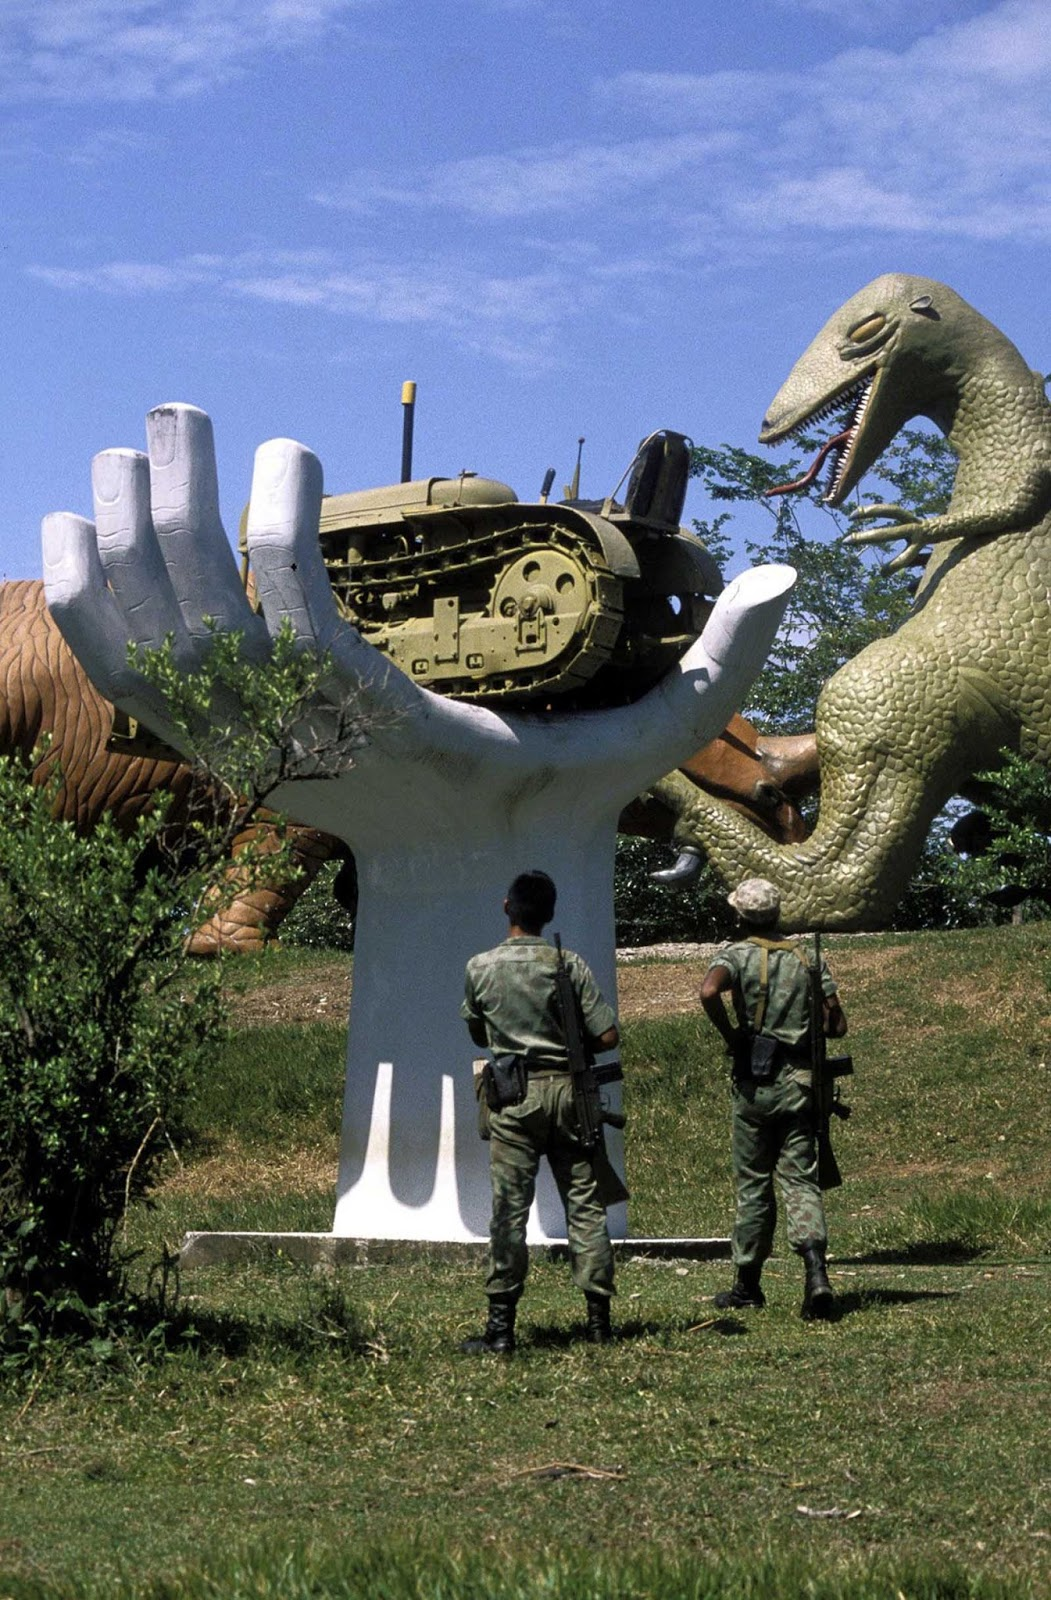 Soldiers inspect sculptures on the grounds of the hacienda.